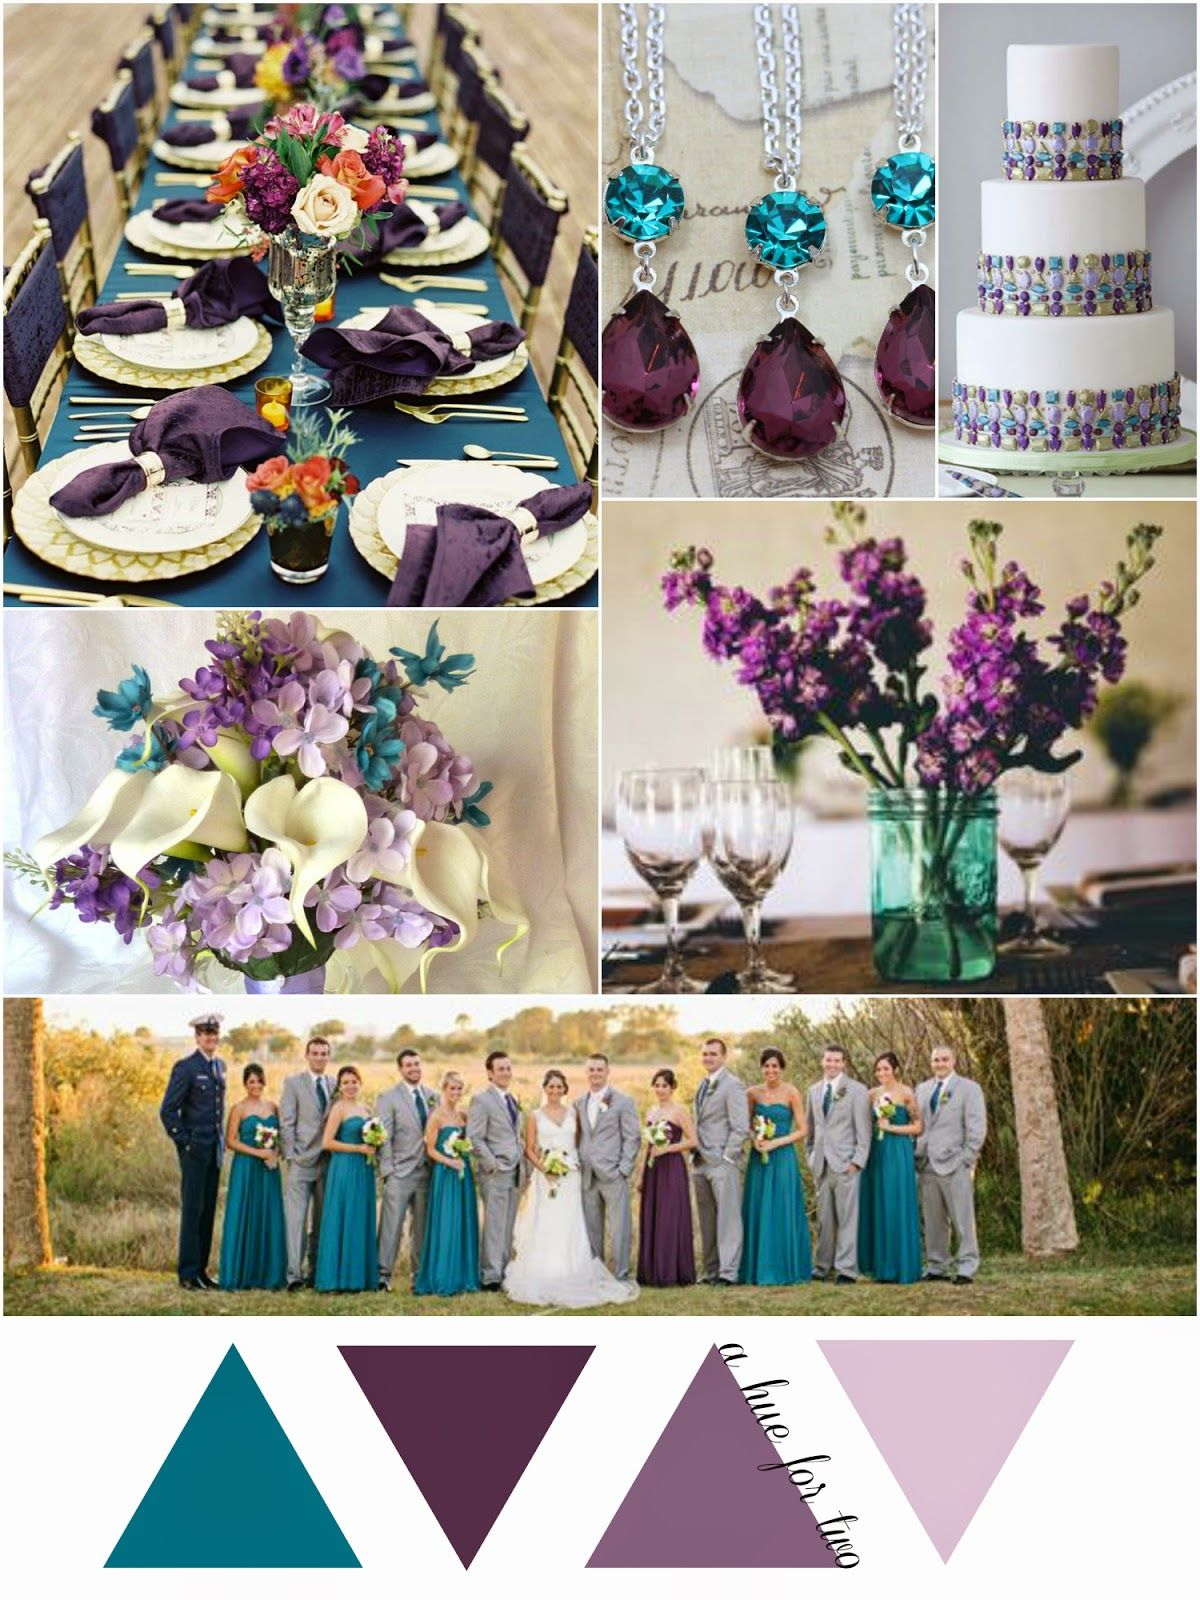 Teal, Eggplant and Lavender Early Fall Wedding | A Hue For Two ...